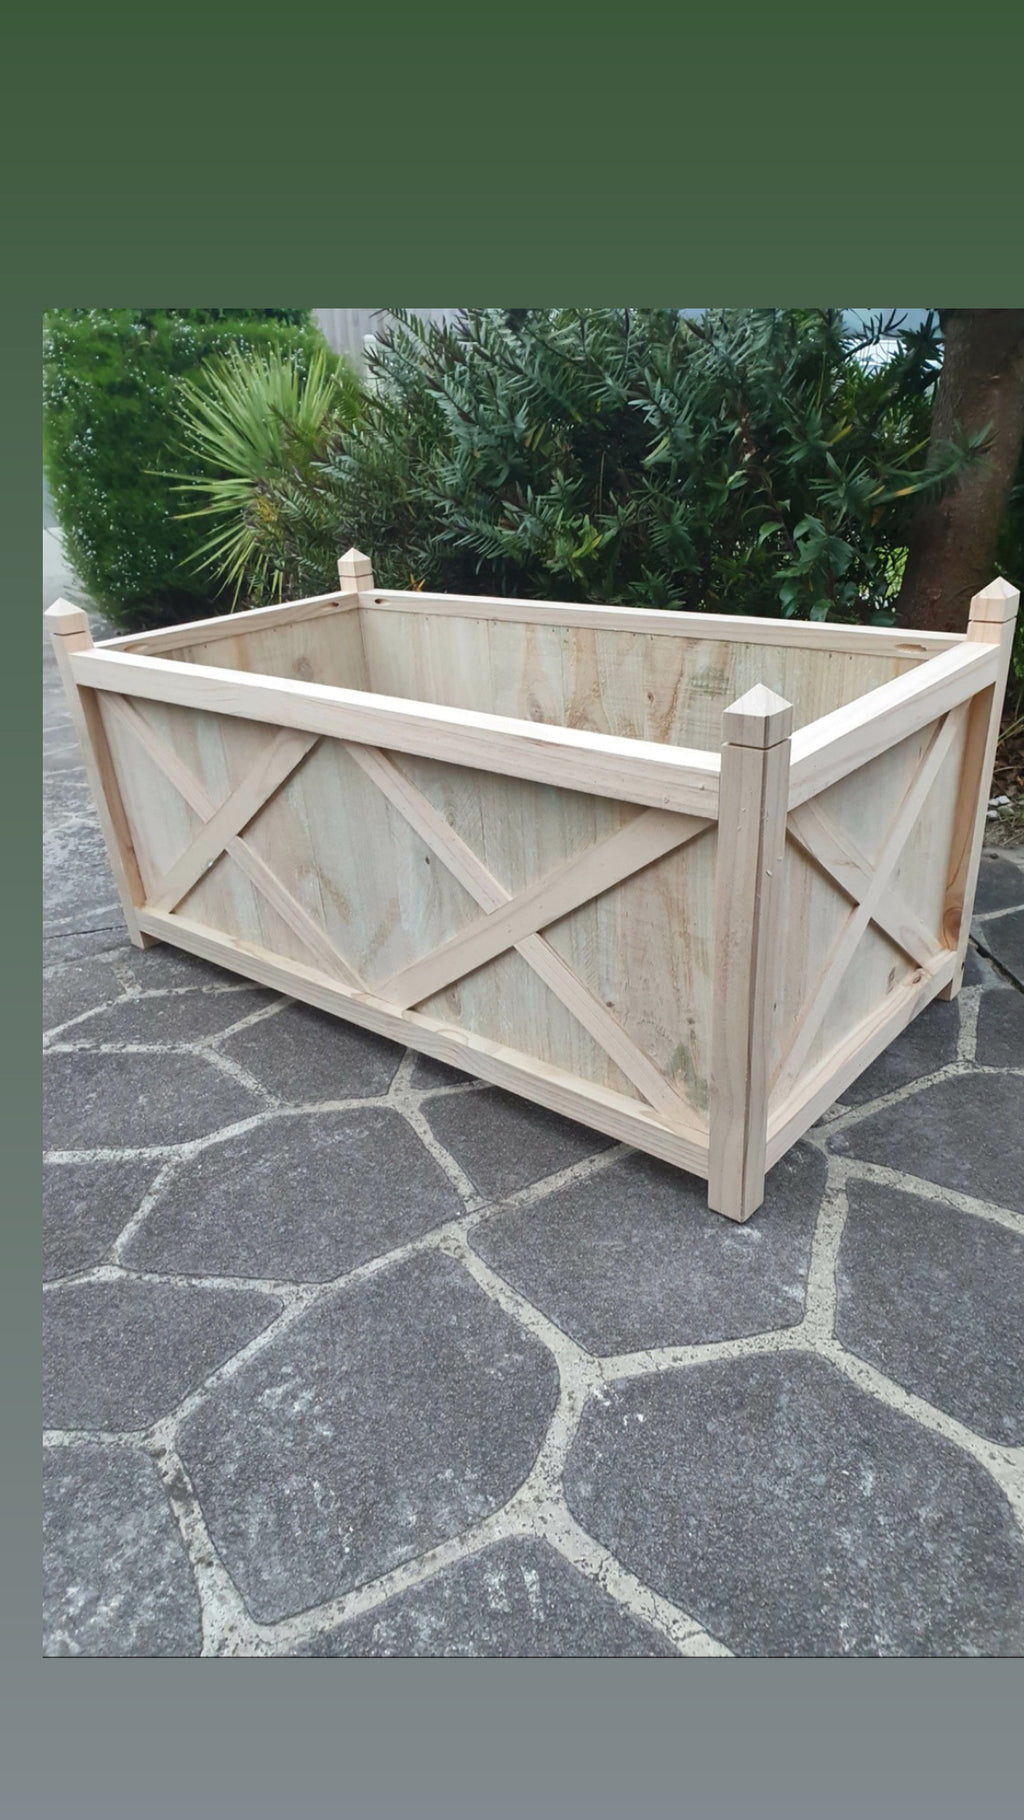 Hampton planter box long - natural